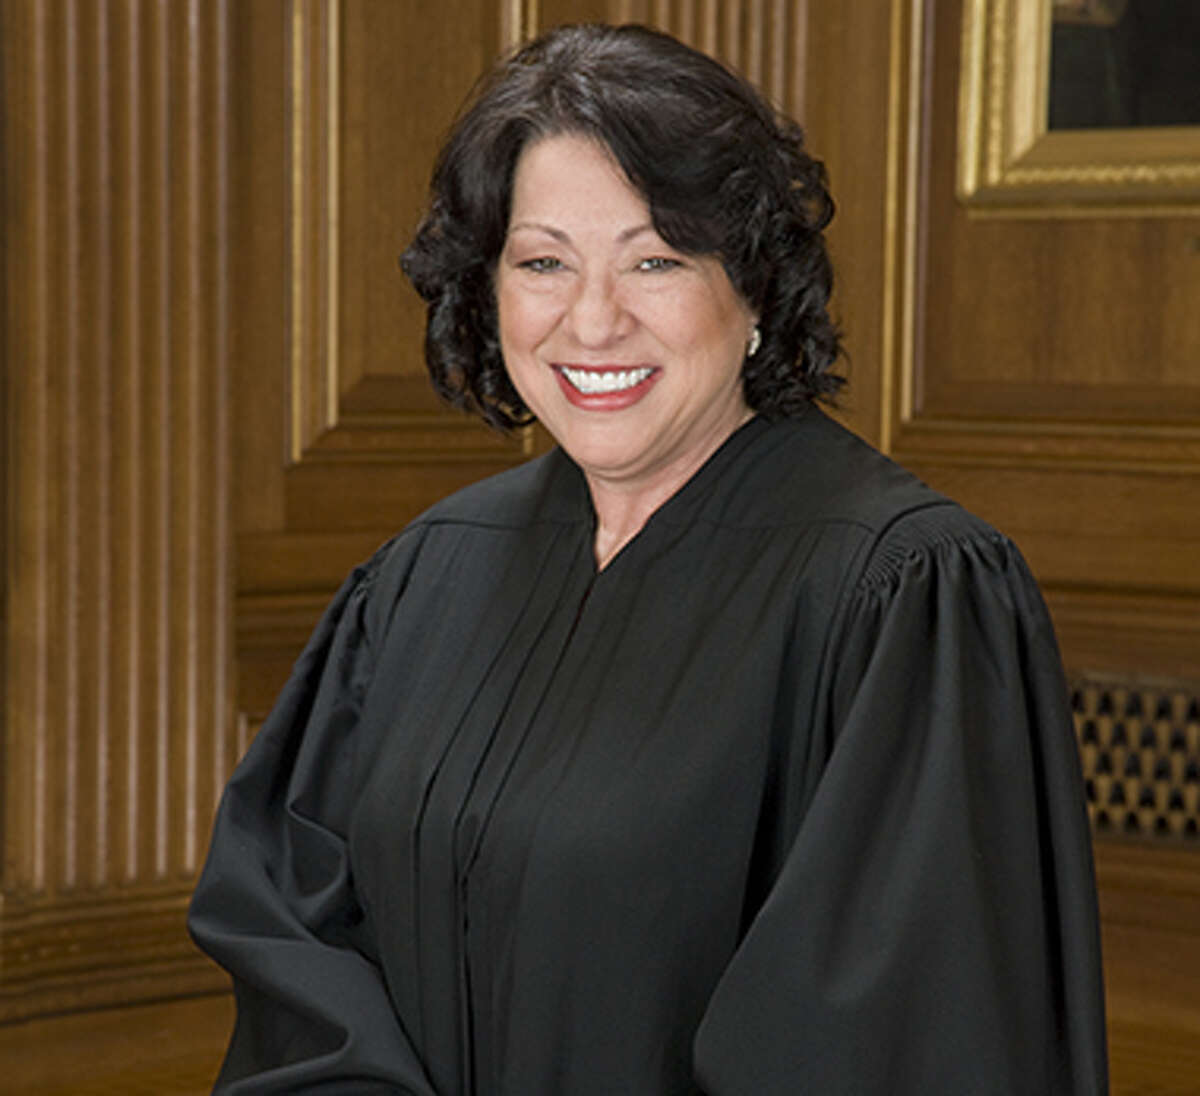 U.S. Supreme Court Justice Sonia Sotomayor (archive photo)